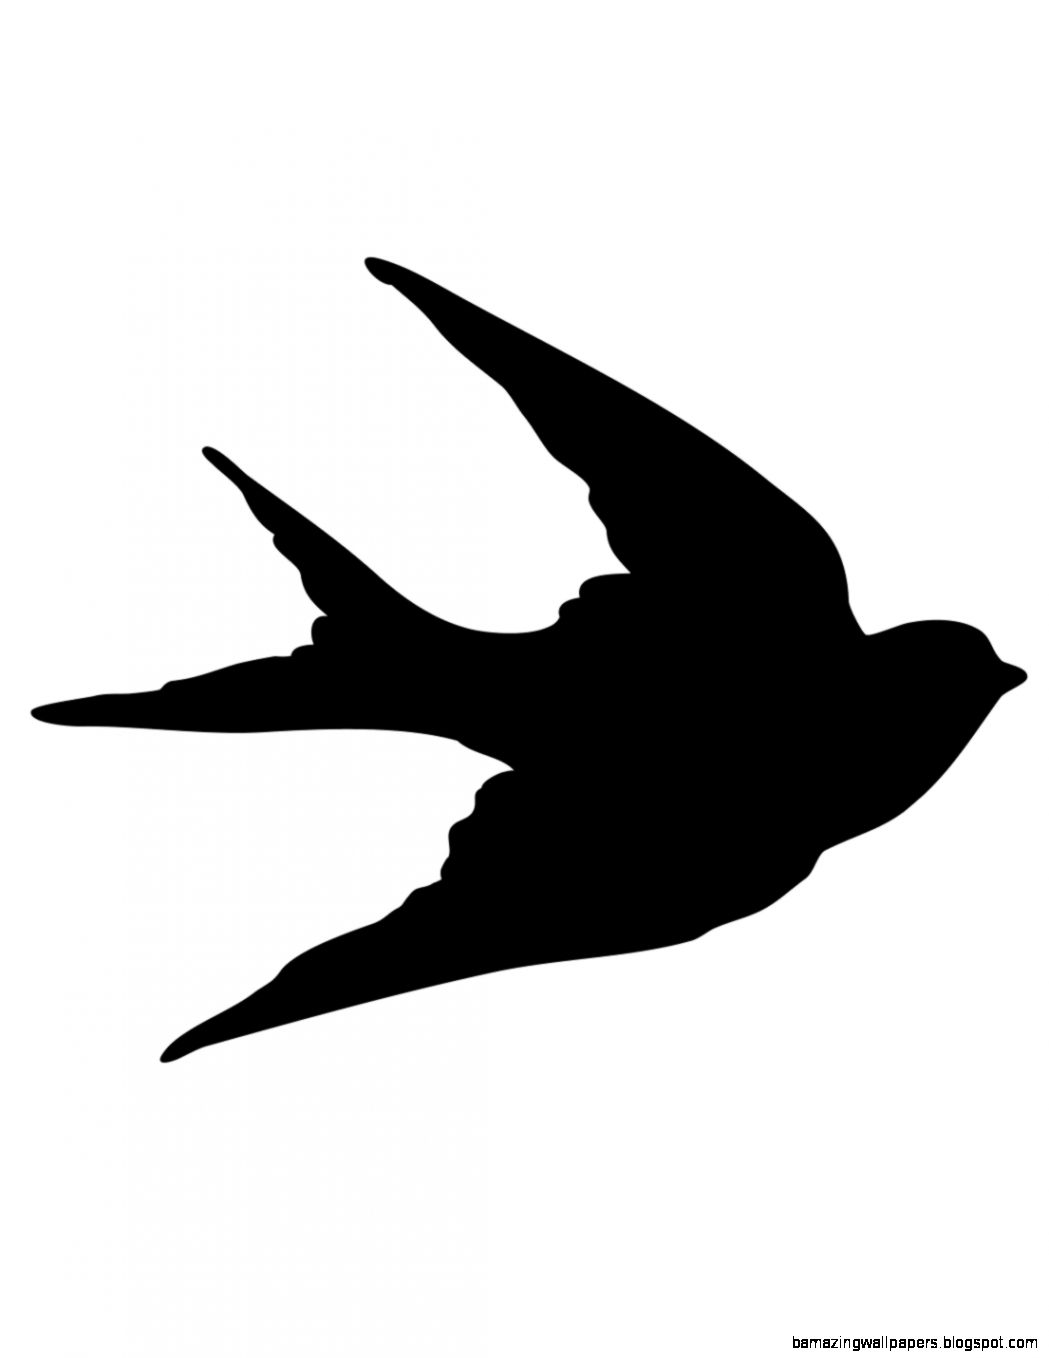 Flying Bird Silhouette Tumblr | Amazing Wallpapers